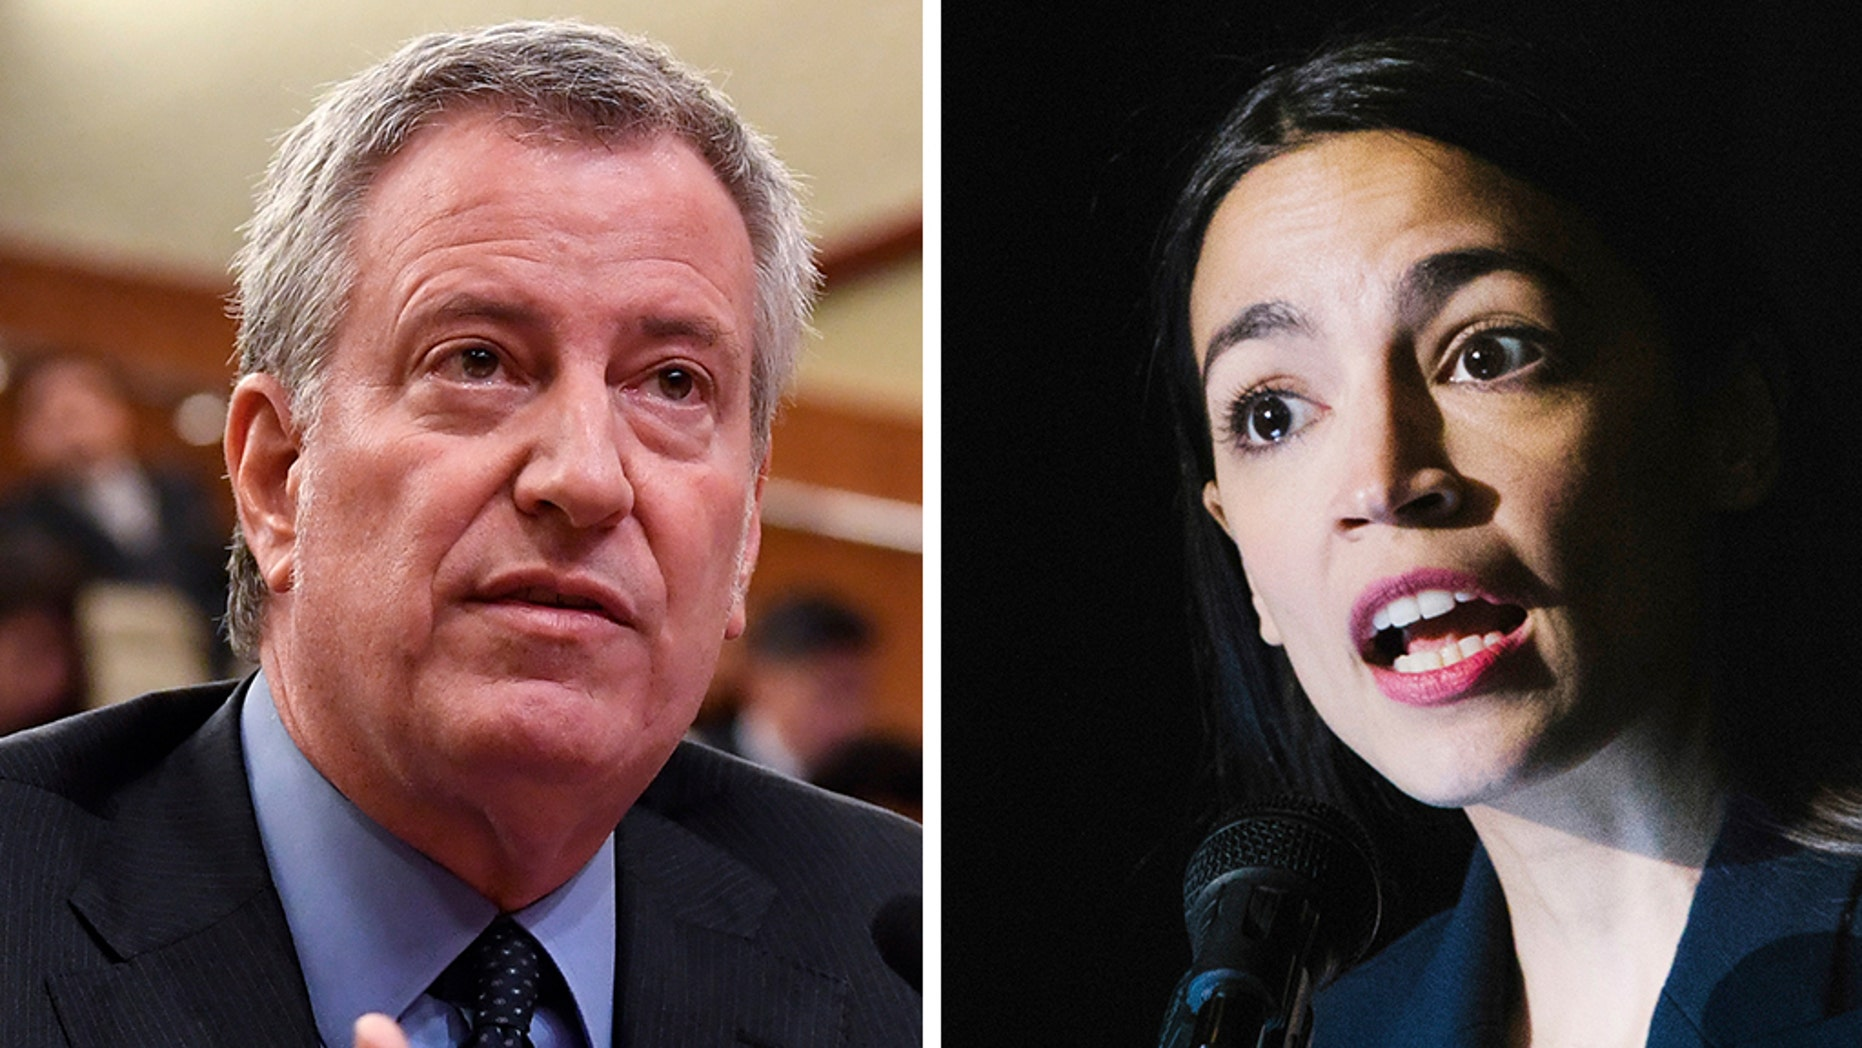 New York City Mayor Bill de Blasio, left, said Sunday that Democratic Rep. Alexandria Ocasio-Cortez, right, was wrong to have claimed the collapse of the Amazon deal would free up $3 billion to fix the city's subways and hire more teachers. (AP)